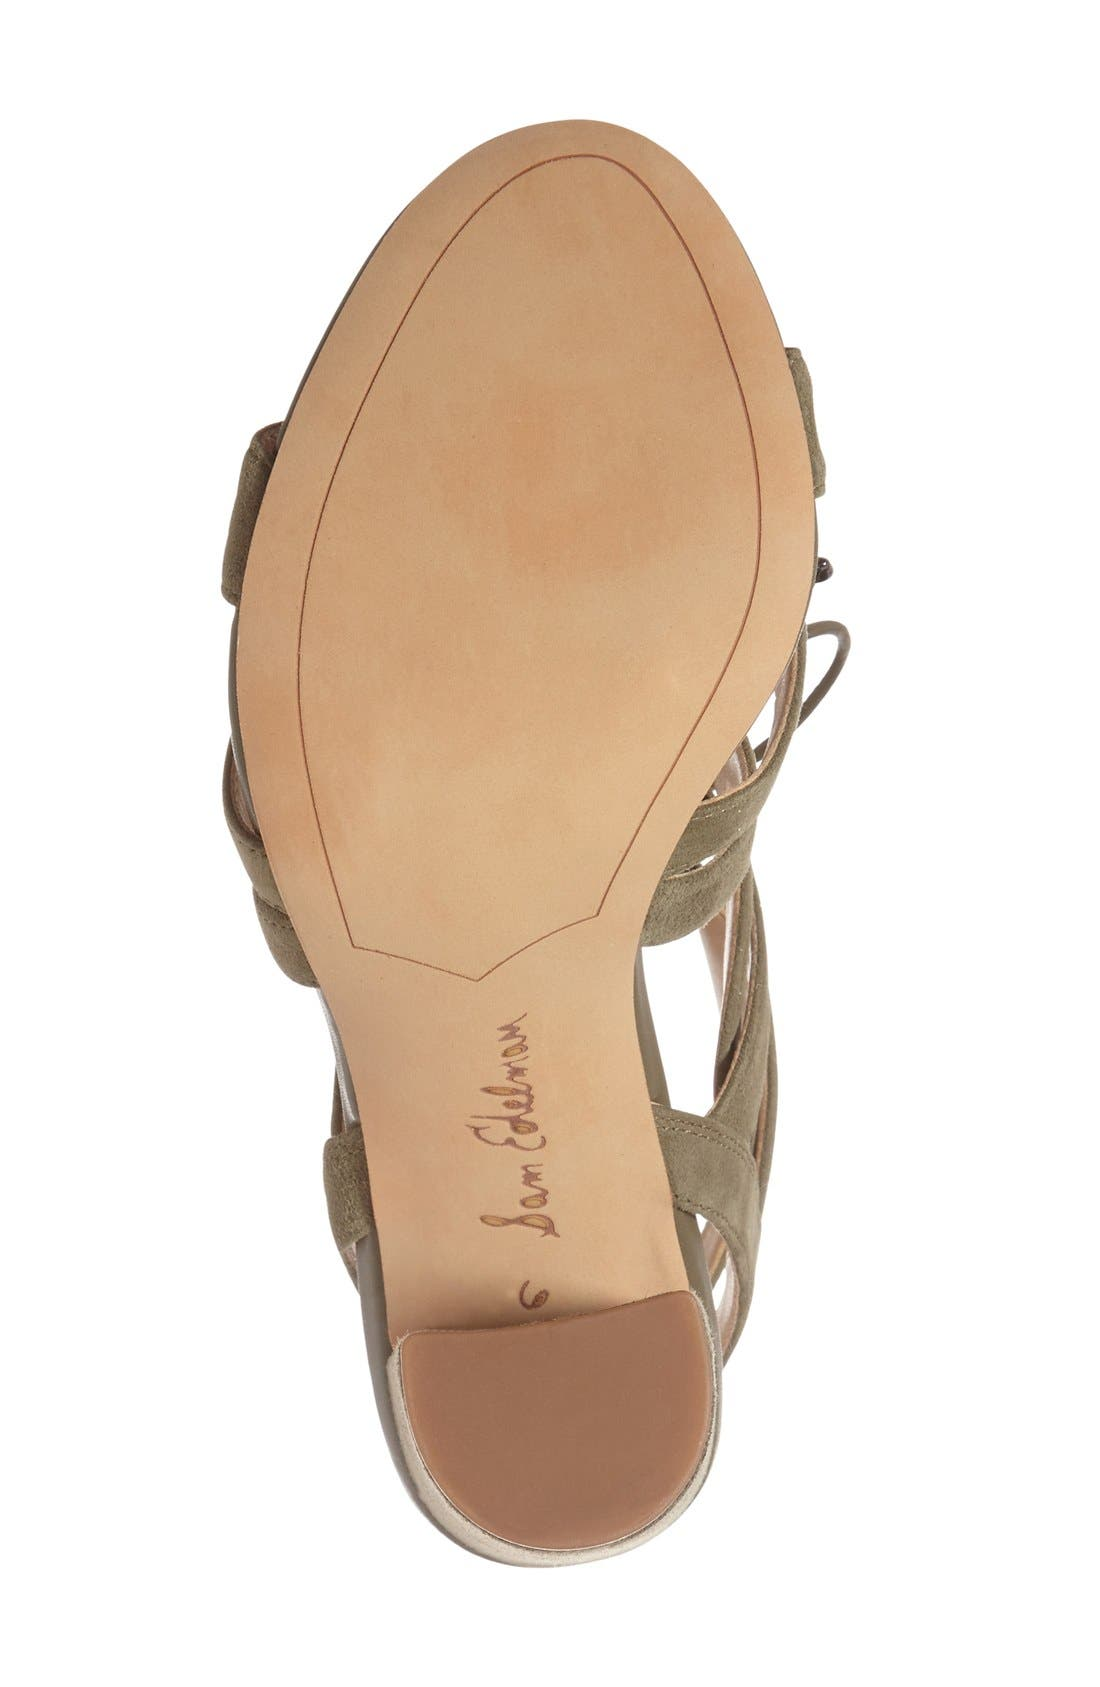 'Yardley' Lace-Up Sandal,                             Alternate thumbnail 5, color,                             Moss Green Suede Leather